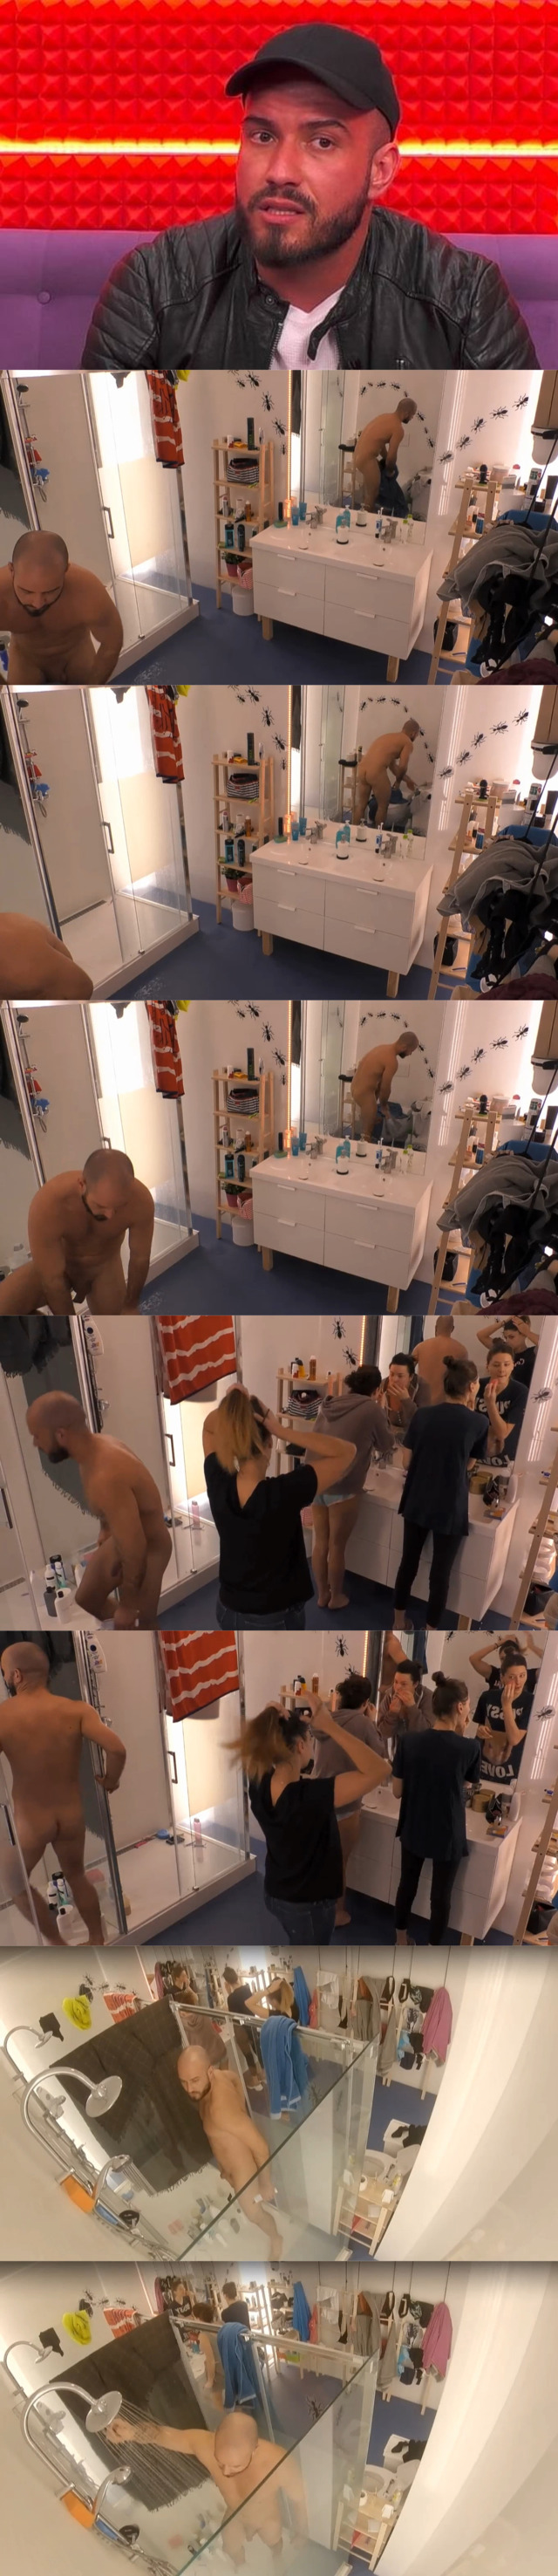 maciej big brother naked in shower